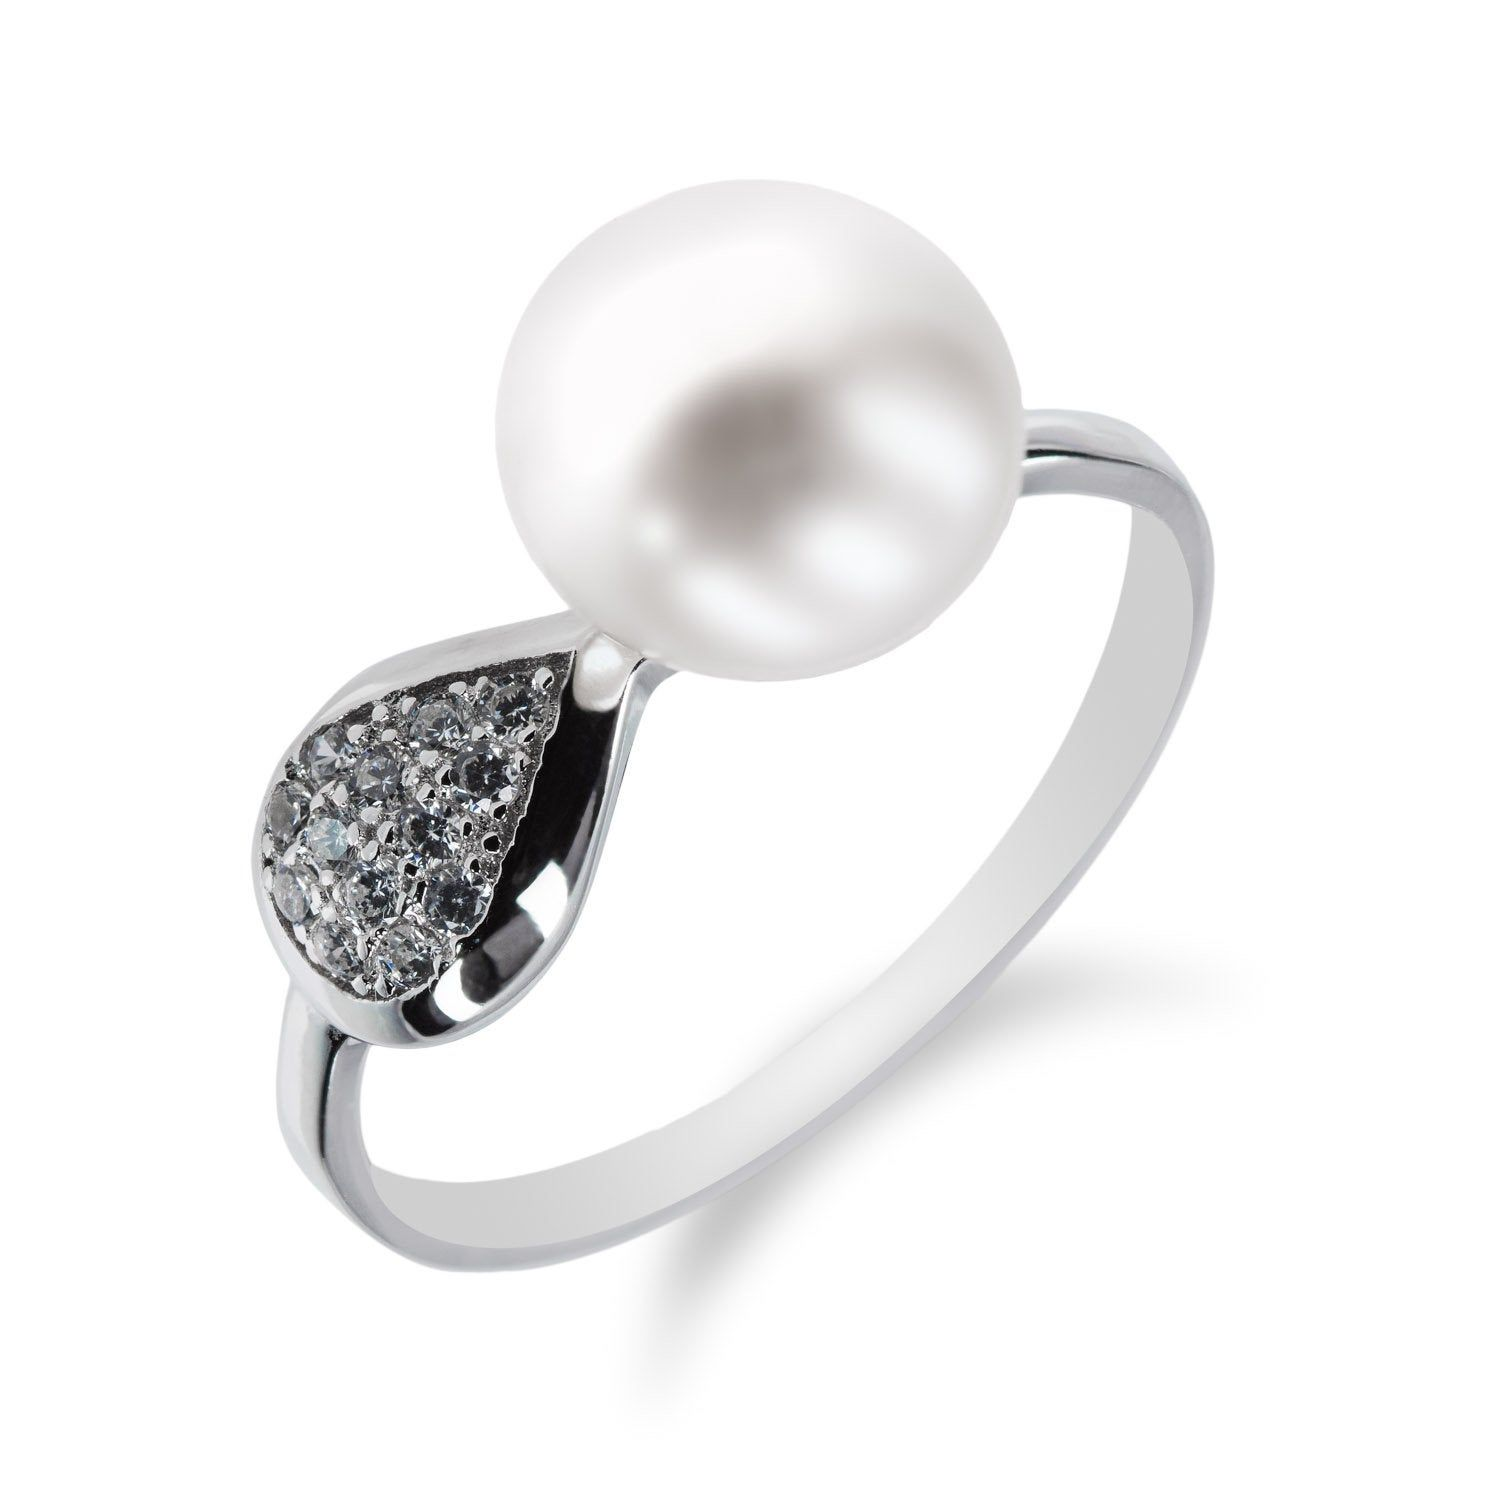 Freshwater Pearl Upside Down Teardrop Ring In 925 Sterling Silver With Cubic Zirconia In 2020 925 Silver Rings Silver Rings Teardrop Ring